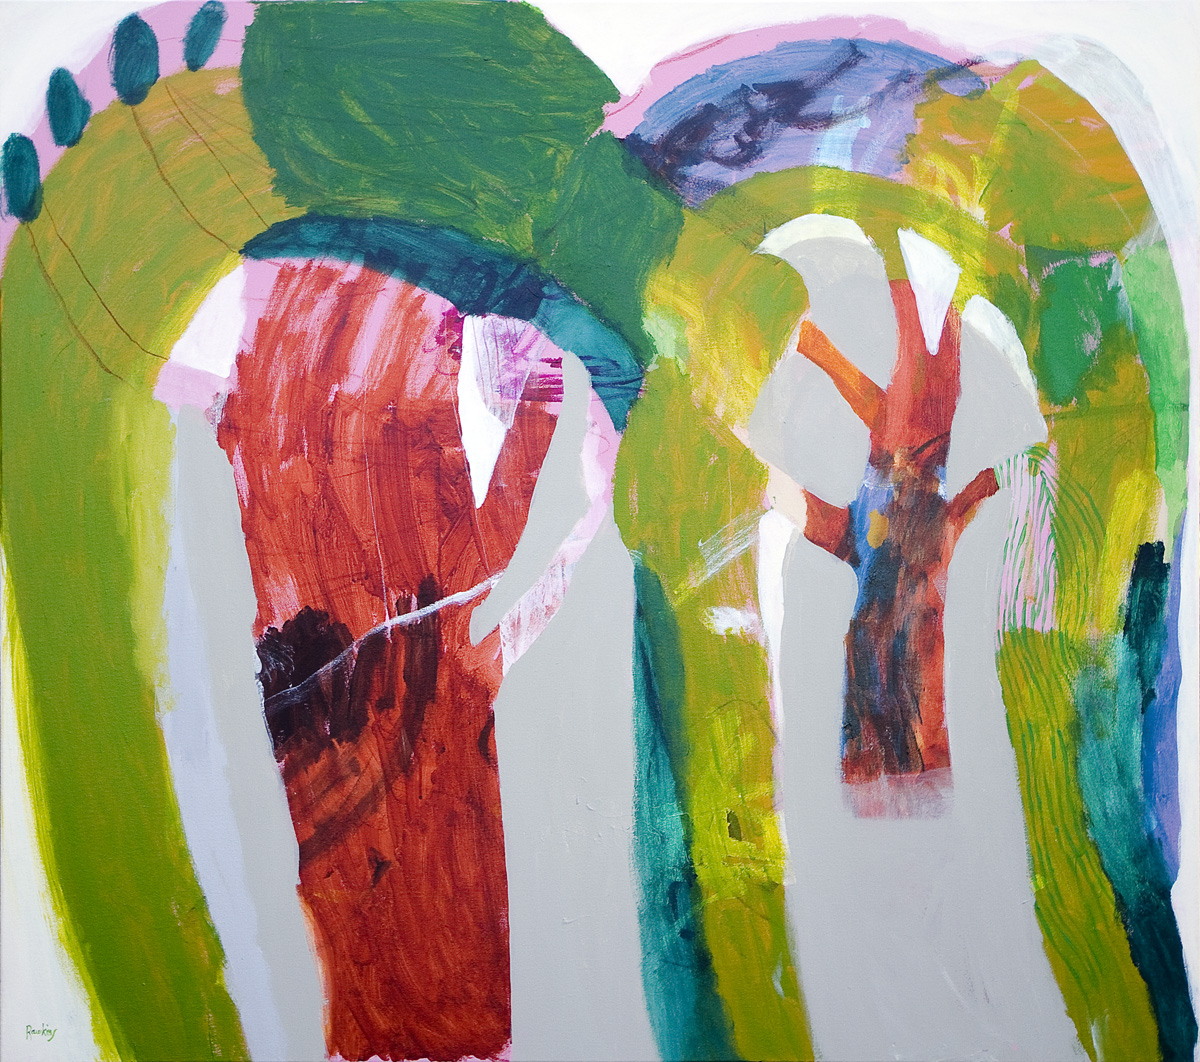 Two Trees, acrylic and charcoal on cotton canvas 121 x 137cm